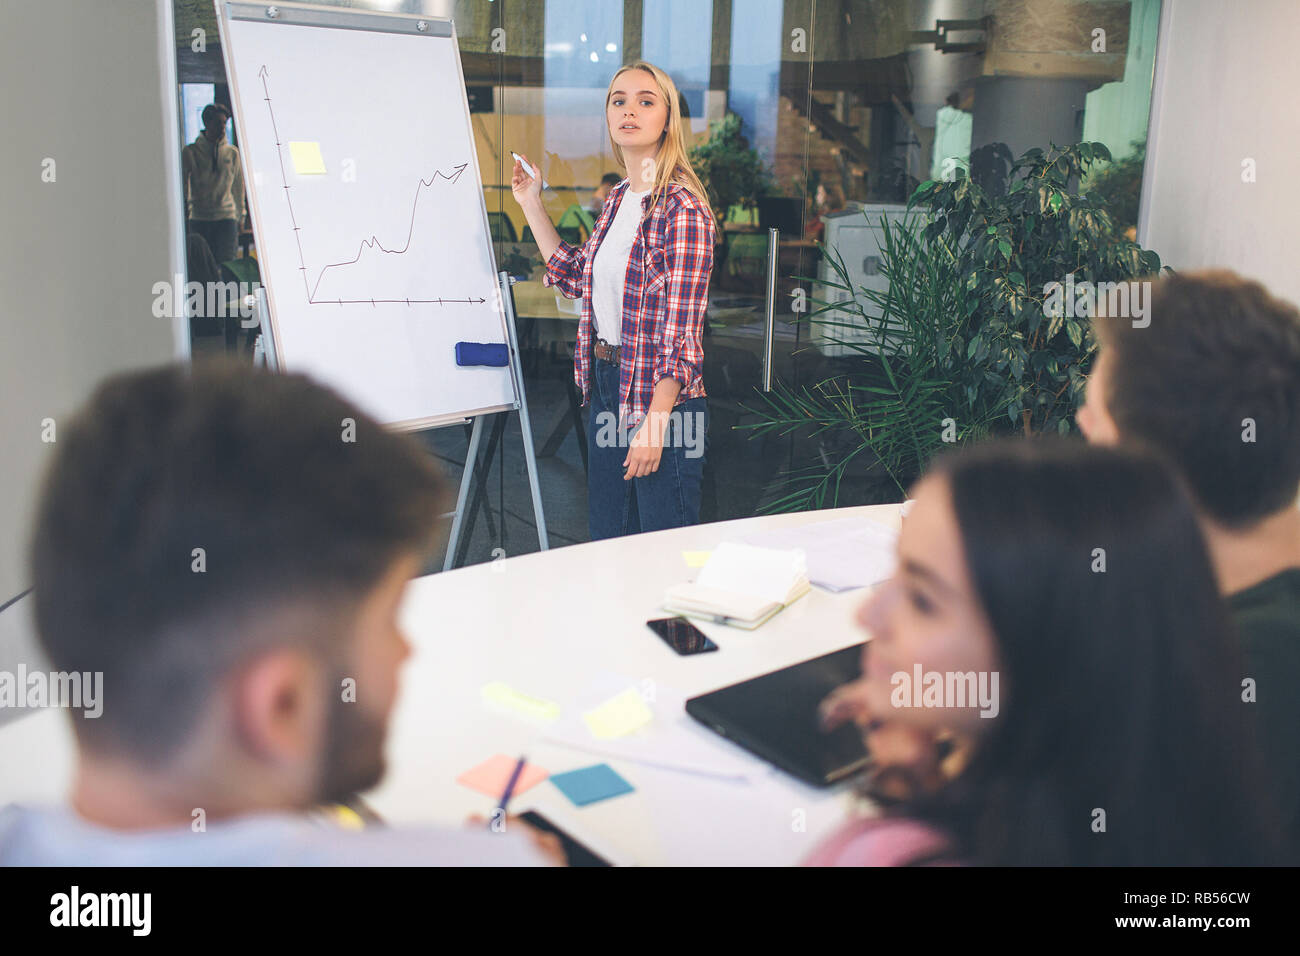 Nice young blonde woman look on camerea. She stand at flipchart and draw grafic line. Another people have conversation between themselves. Stock Photo